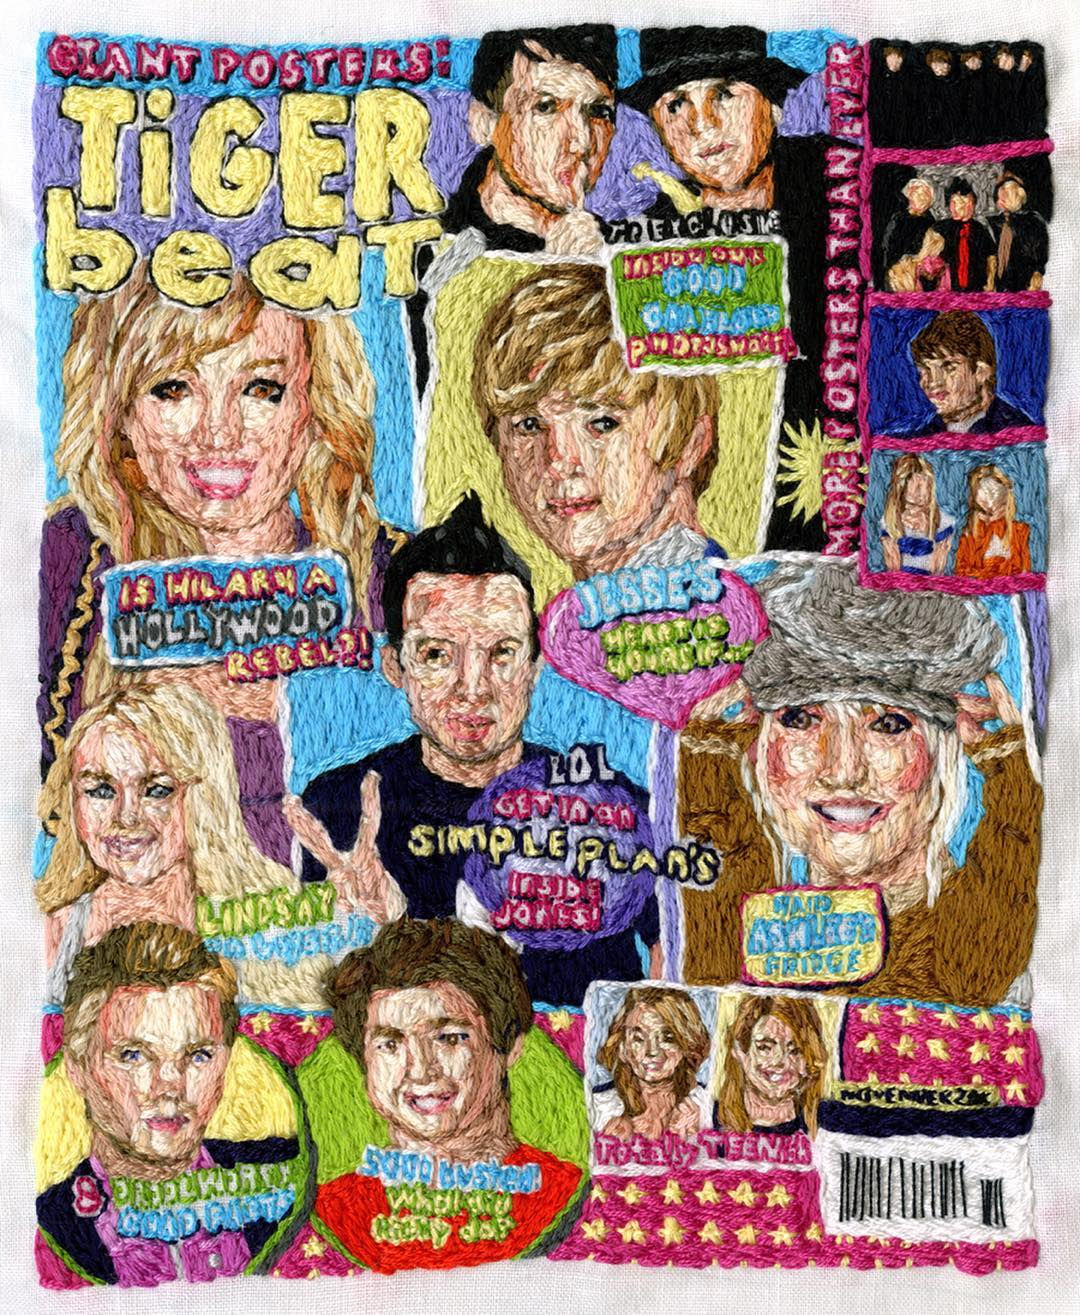 Embroidery art of Tiger Beat from the mid 200s